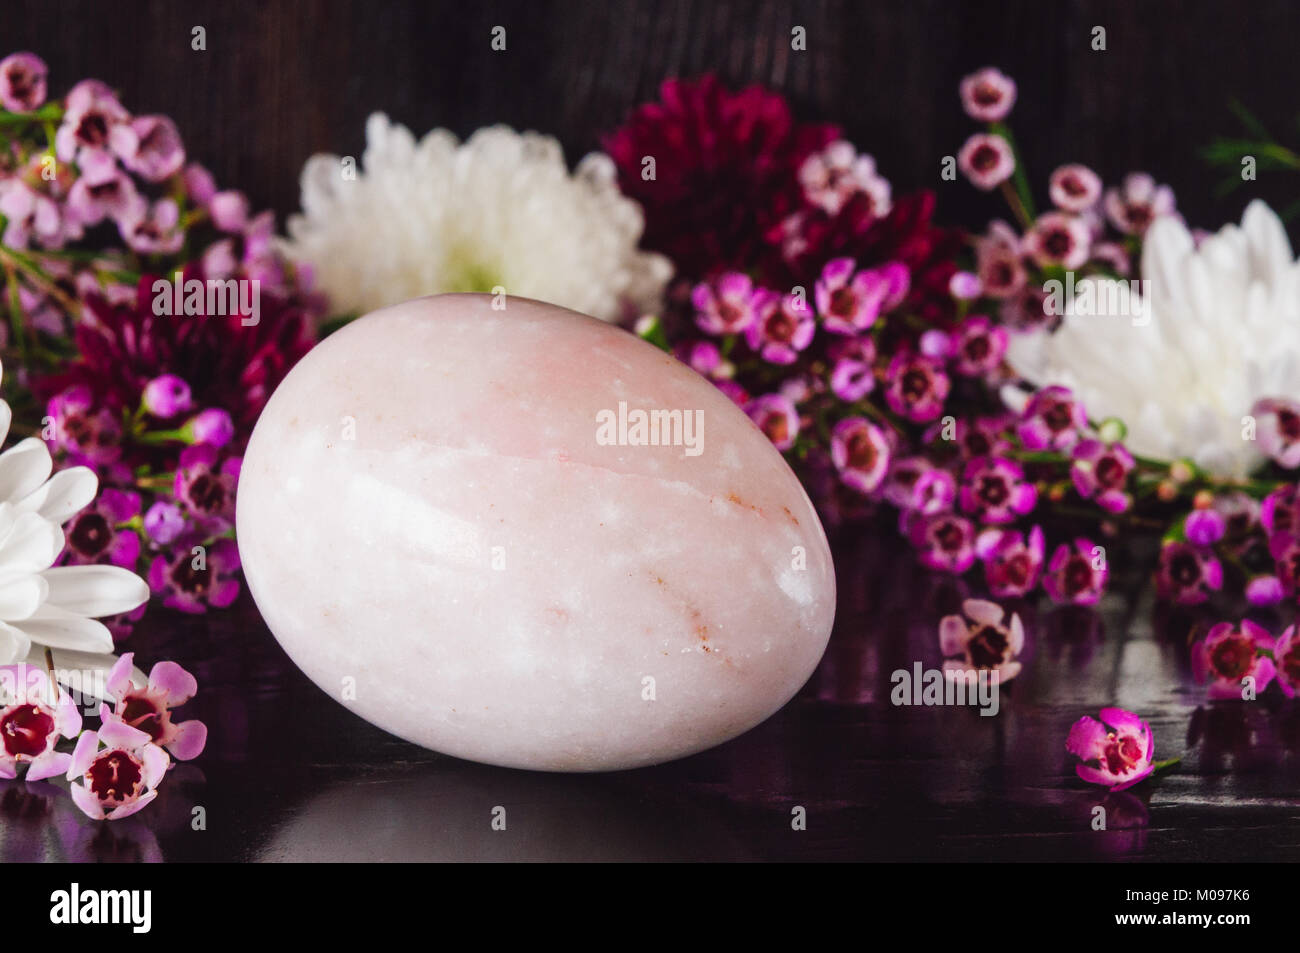 Pink Stone Egg with Mixed Flowers - Stock Image